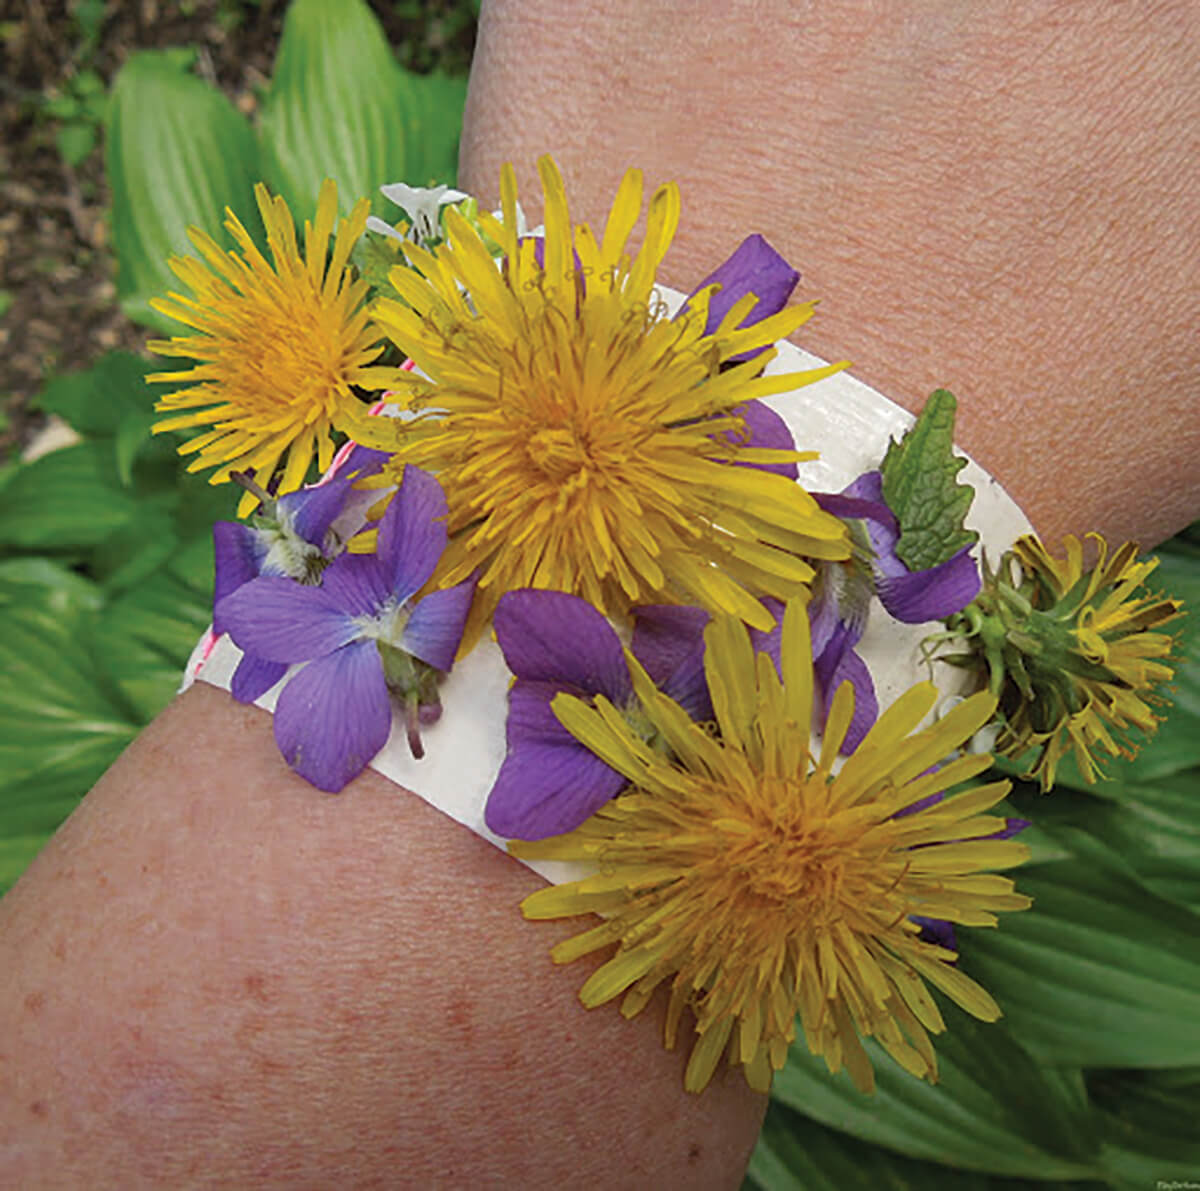 Natur bracelet with flowers on tape